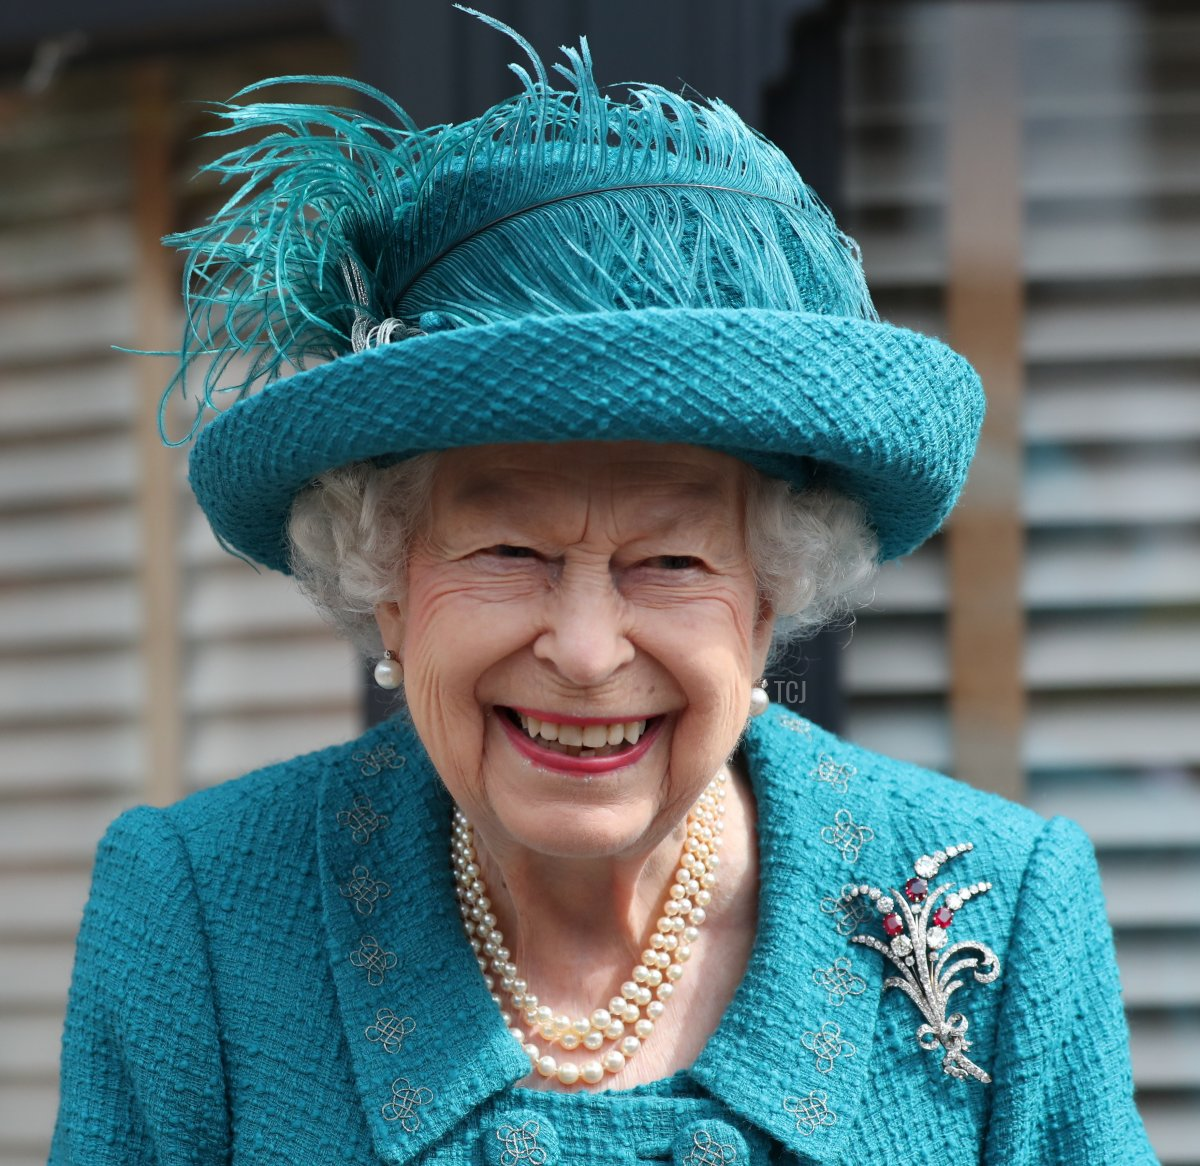 Queen Elizabeth II visits the set of the long running television series Coronation Street, on July 8, 2021 in Manchester, England